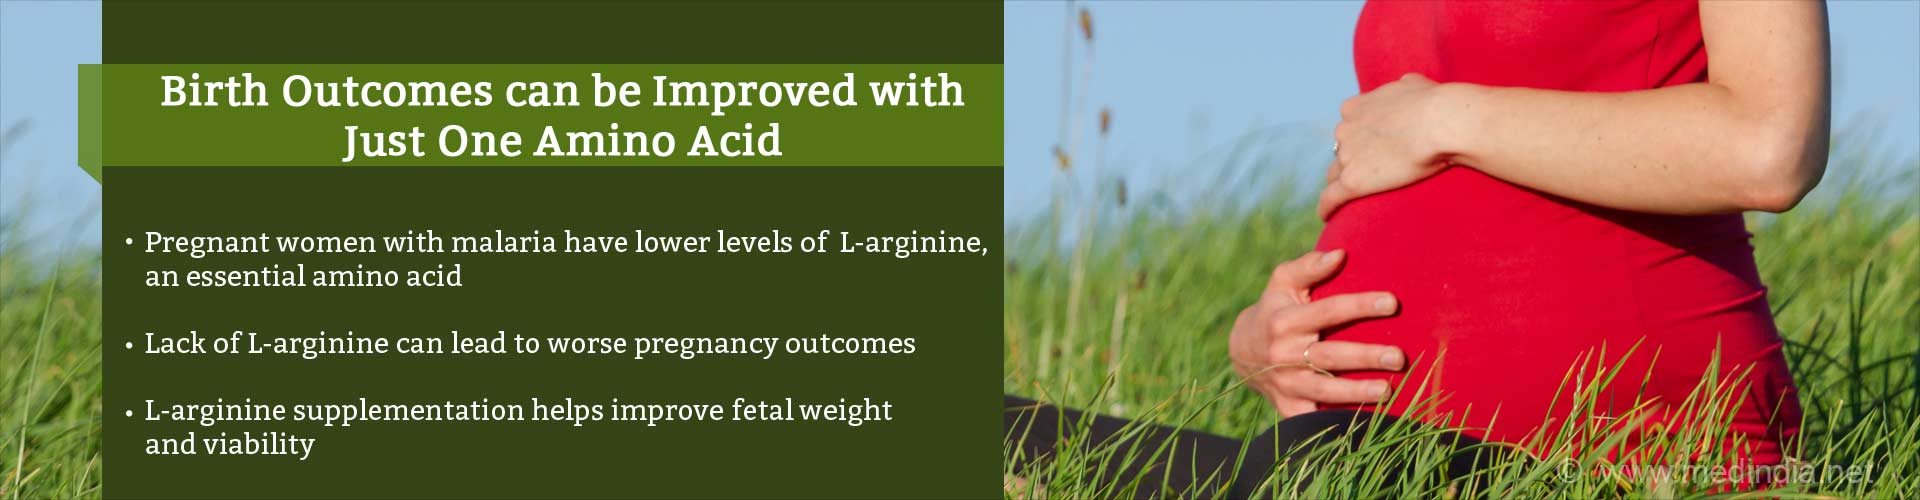 One Amino Acid can Improve Birth Outcomes